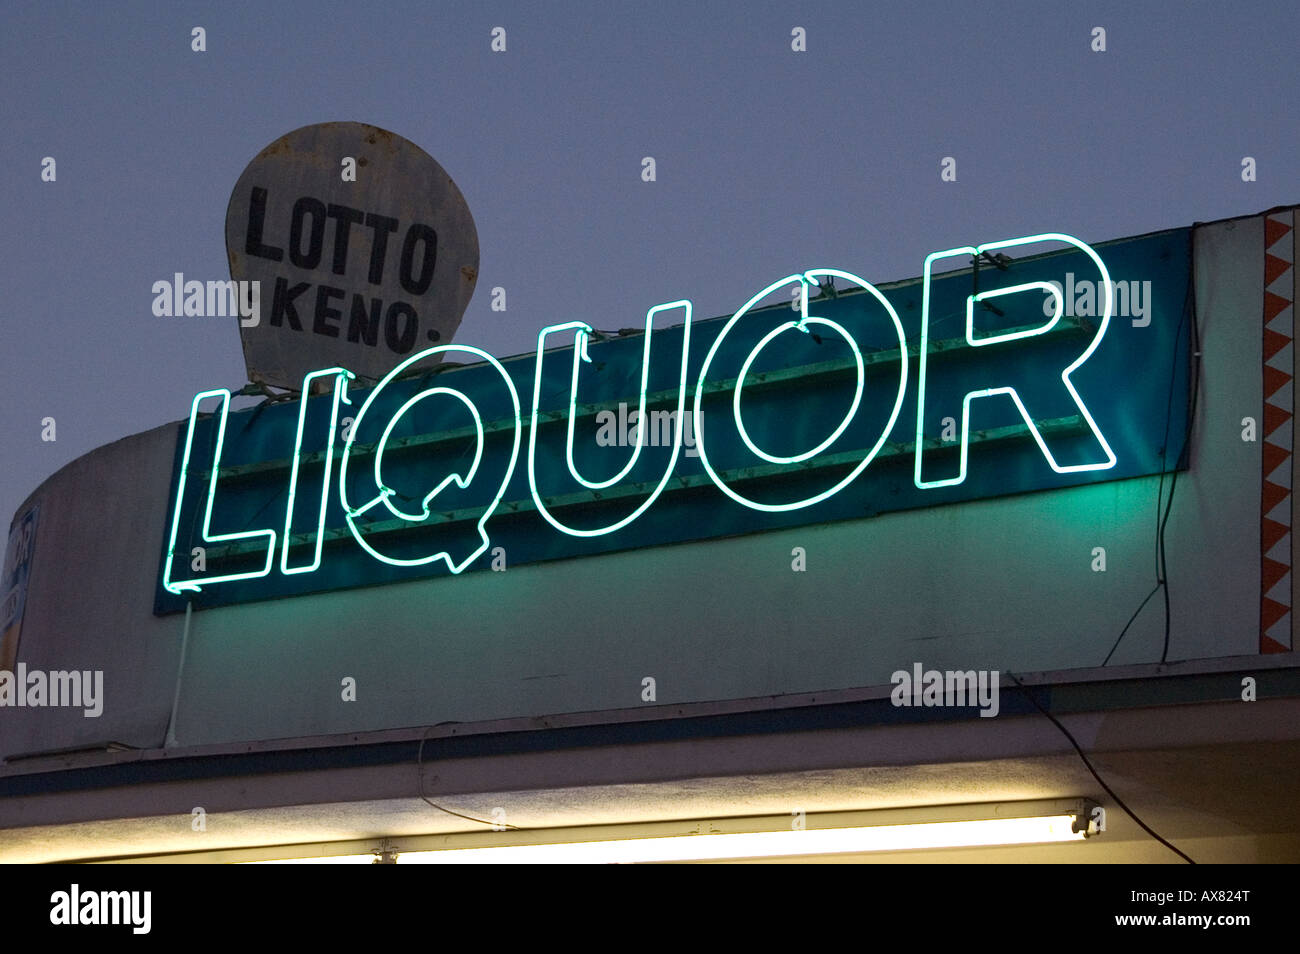 Liquor store sign in San Diego - Stock Image